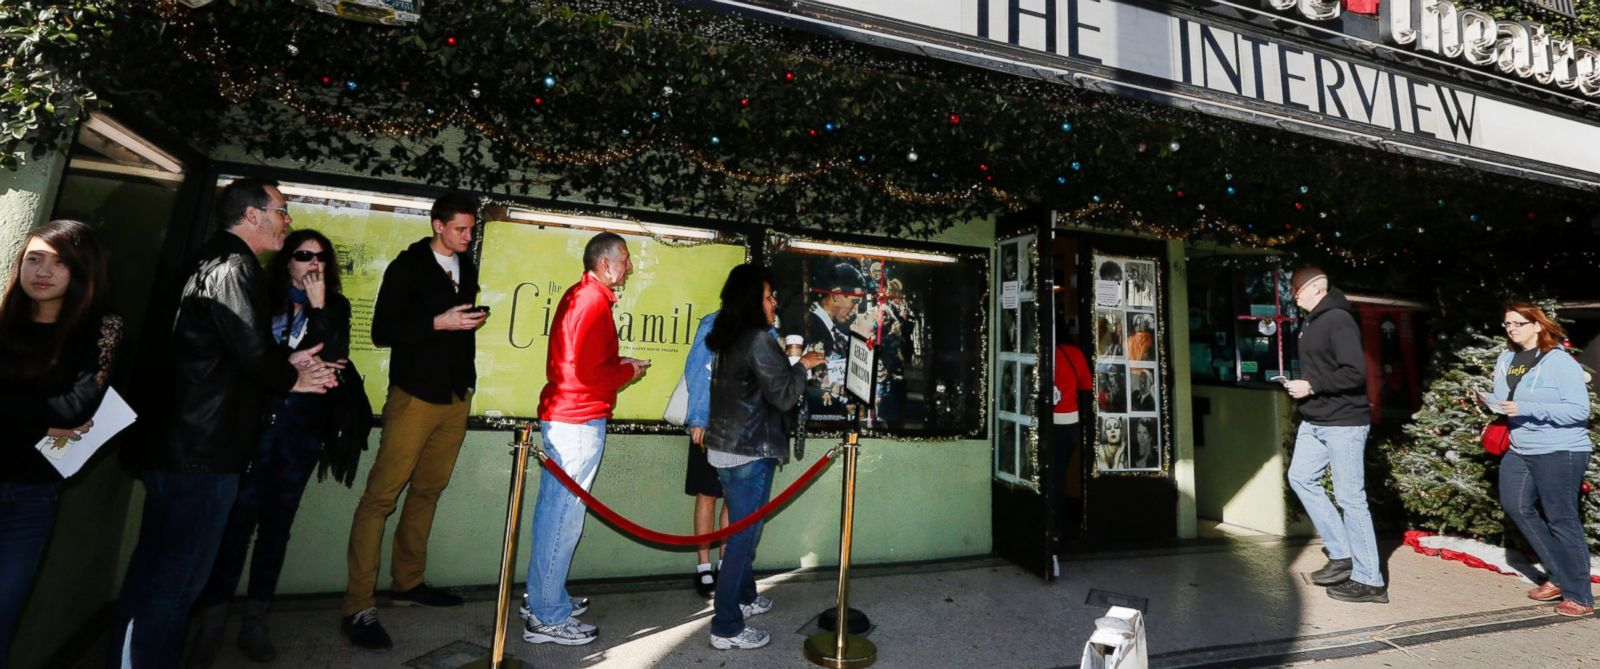 """PHOTO: Patrons queue up to see """"The Interview"""" at the the Cinefamily at Silent Movie Theater in Los Angeles on Dec. 25, 2014."""